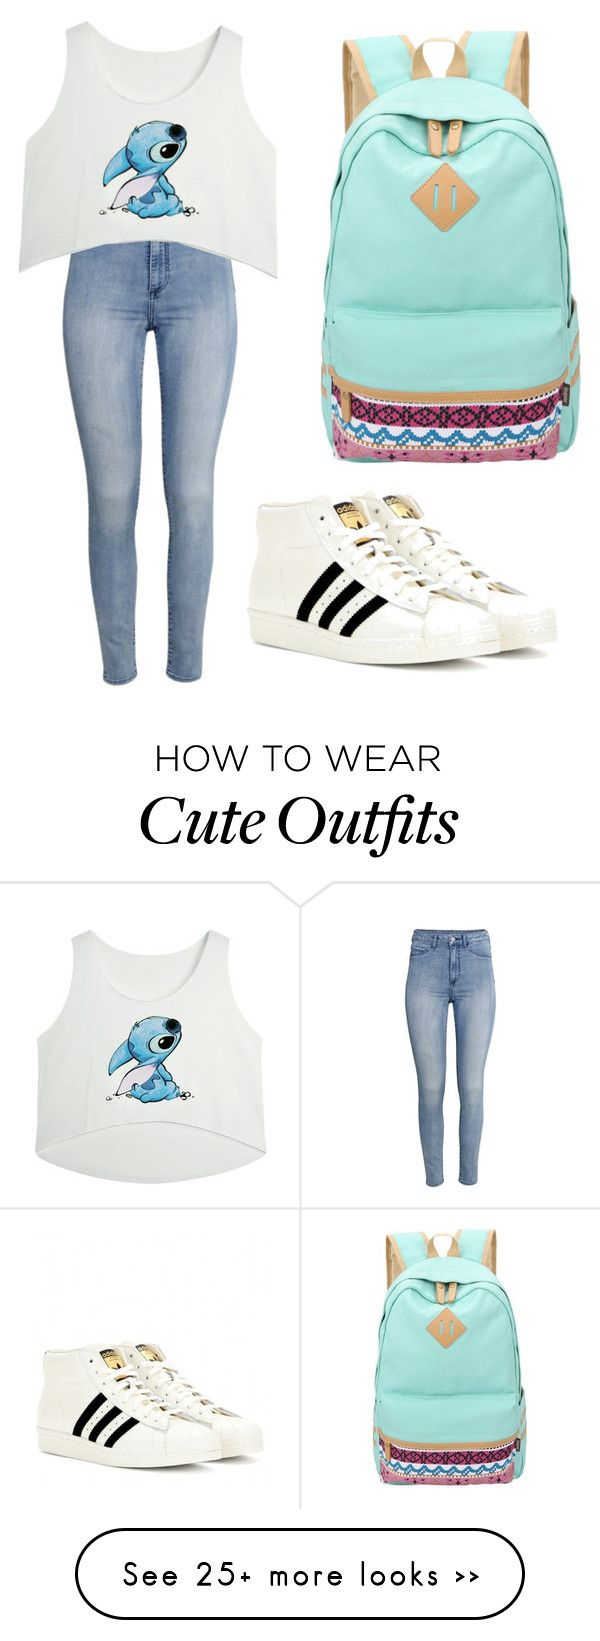 school outfit by bridgetdnapoli on polyvore featuring h m and adidas originals clothes. Black Bedroom Furniture Sets. Home Design Ideas